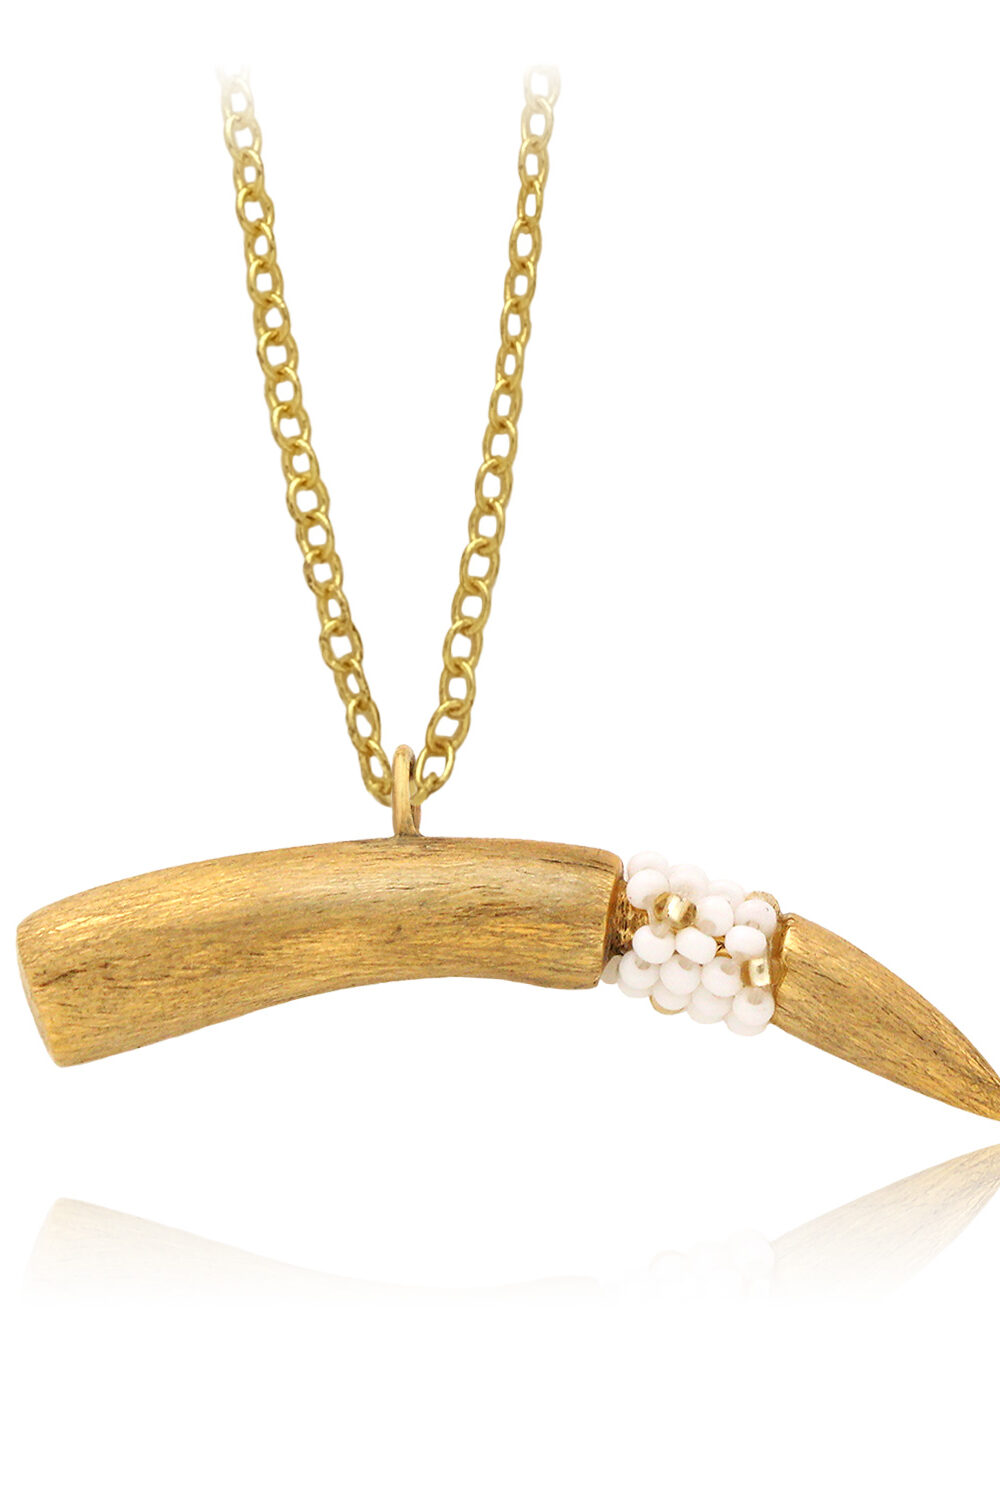 Textured Beaded Tusk Necklace White Fine Chain by SHIKHAZURI